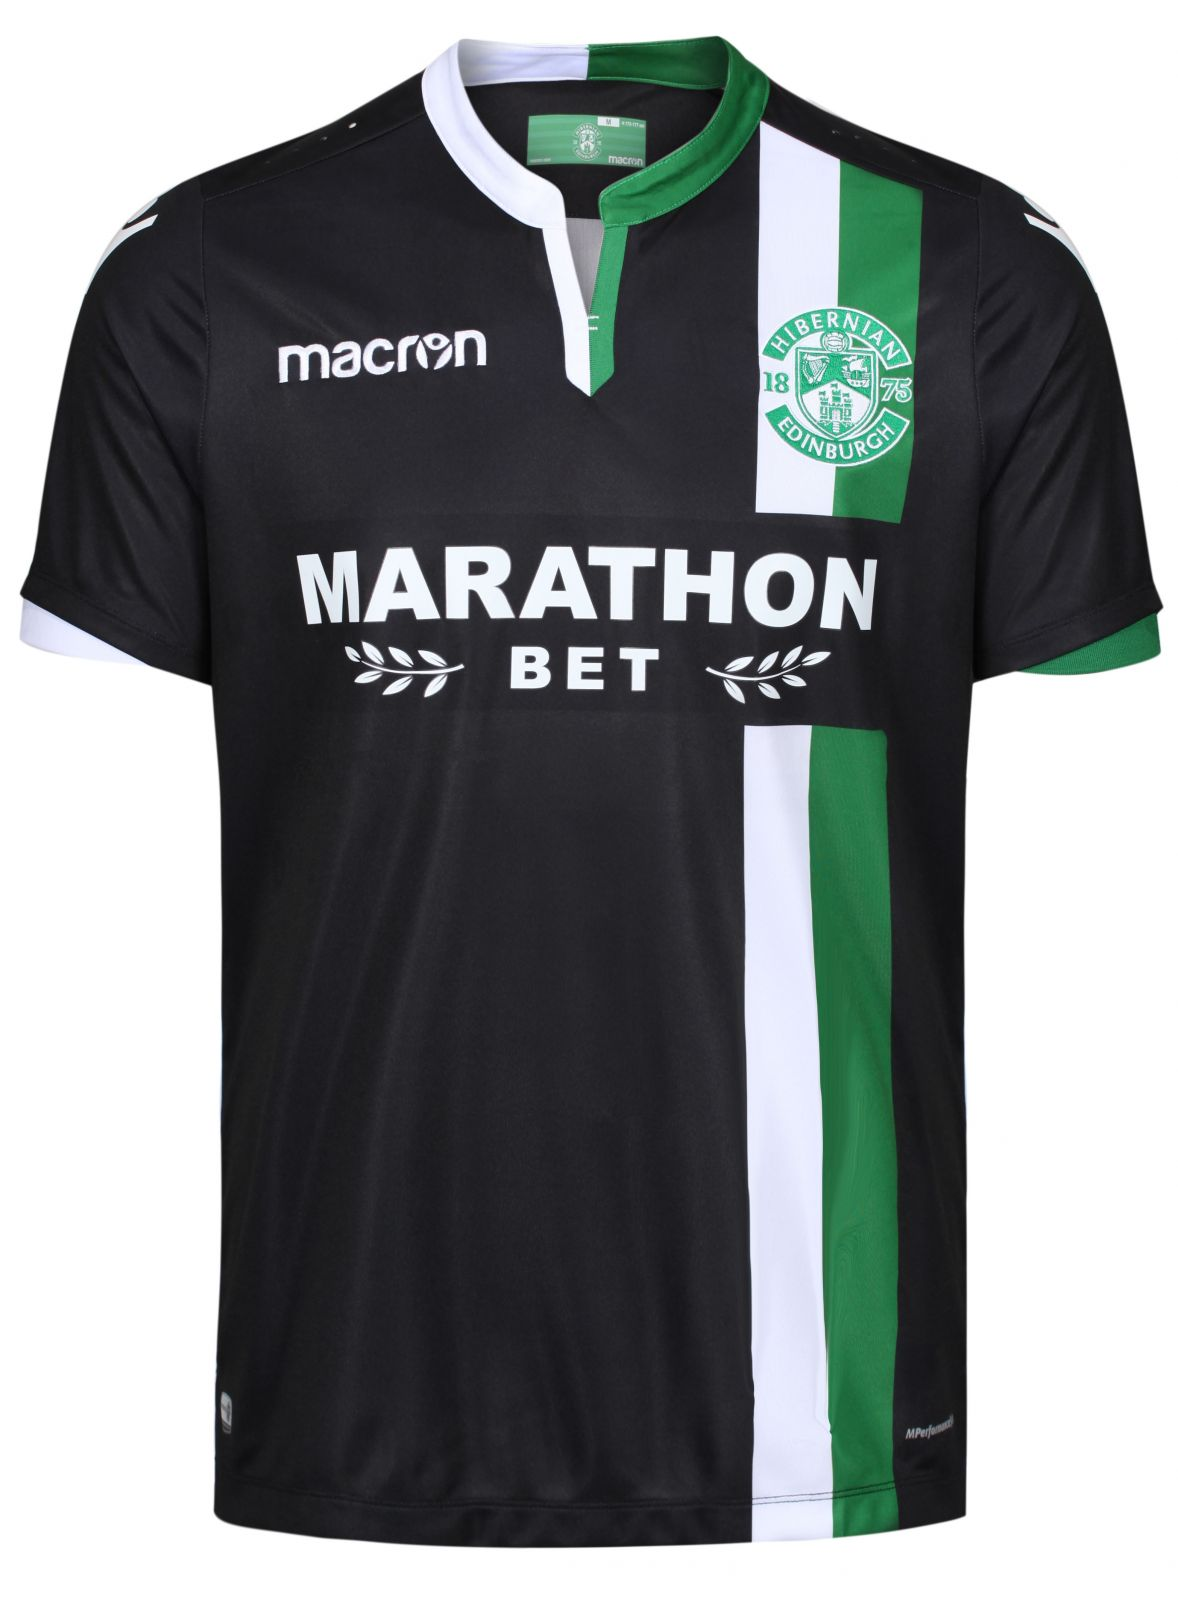 https://www.hiberniandirect.co.uk/imagprod/imaglarg/58086594S.jpg